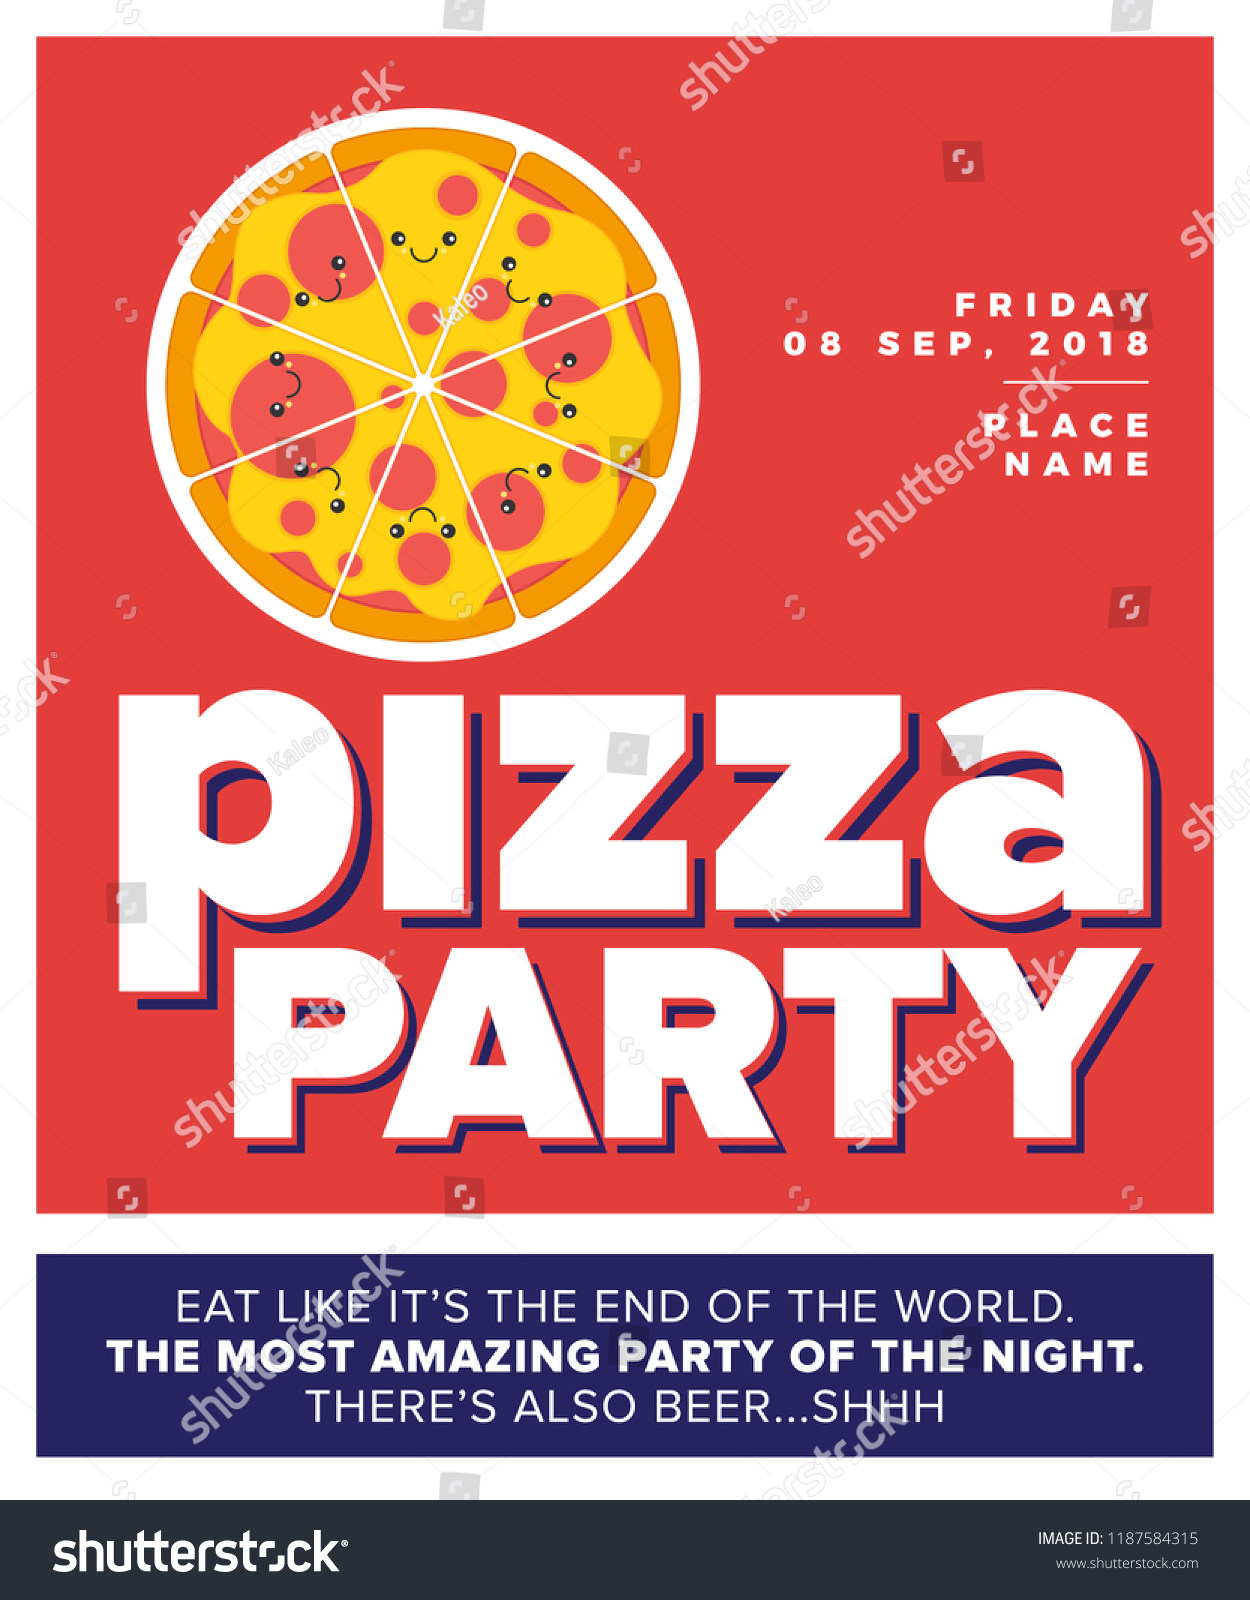 pizza party template design vector illustration of cute pizza character